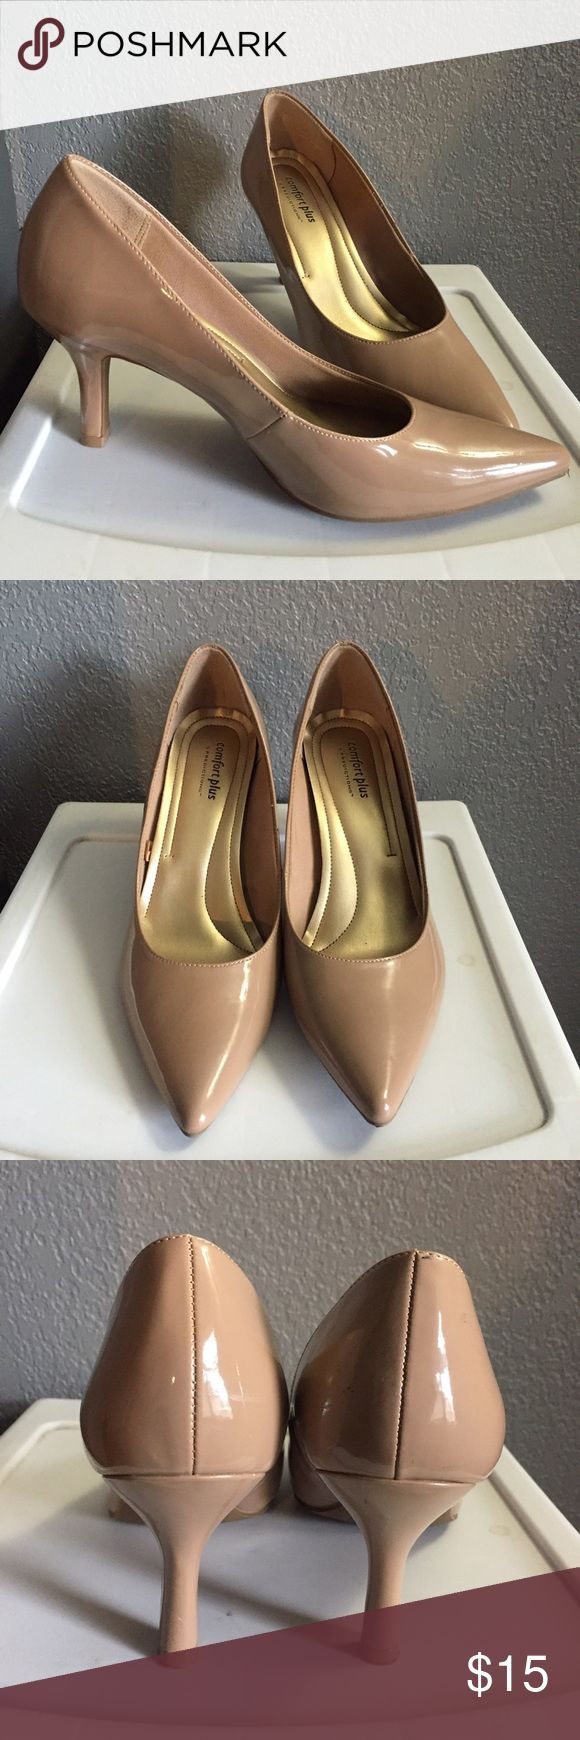 "Nude Patent Leather Pumps 🚫NO TRADES🚫 Nude patent leather pumps. Comfort plus by predictions from Payless. Very comfortable. 3"" heel. Size 9. Shoes Heels"